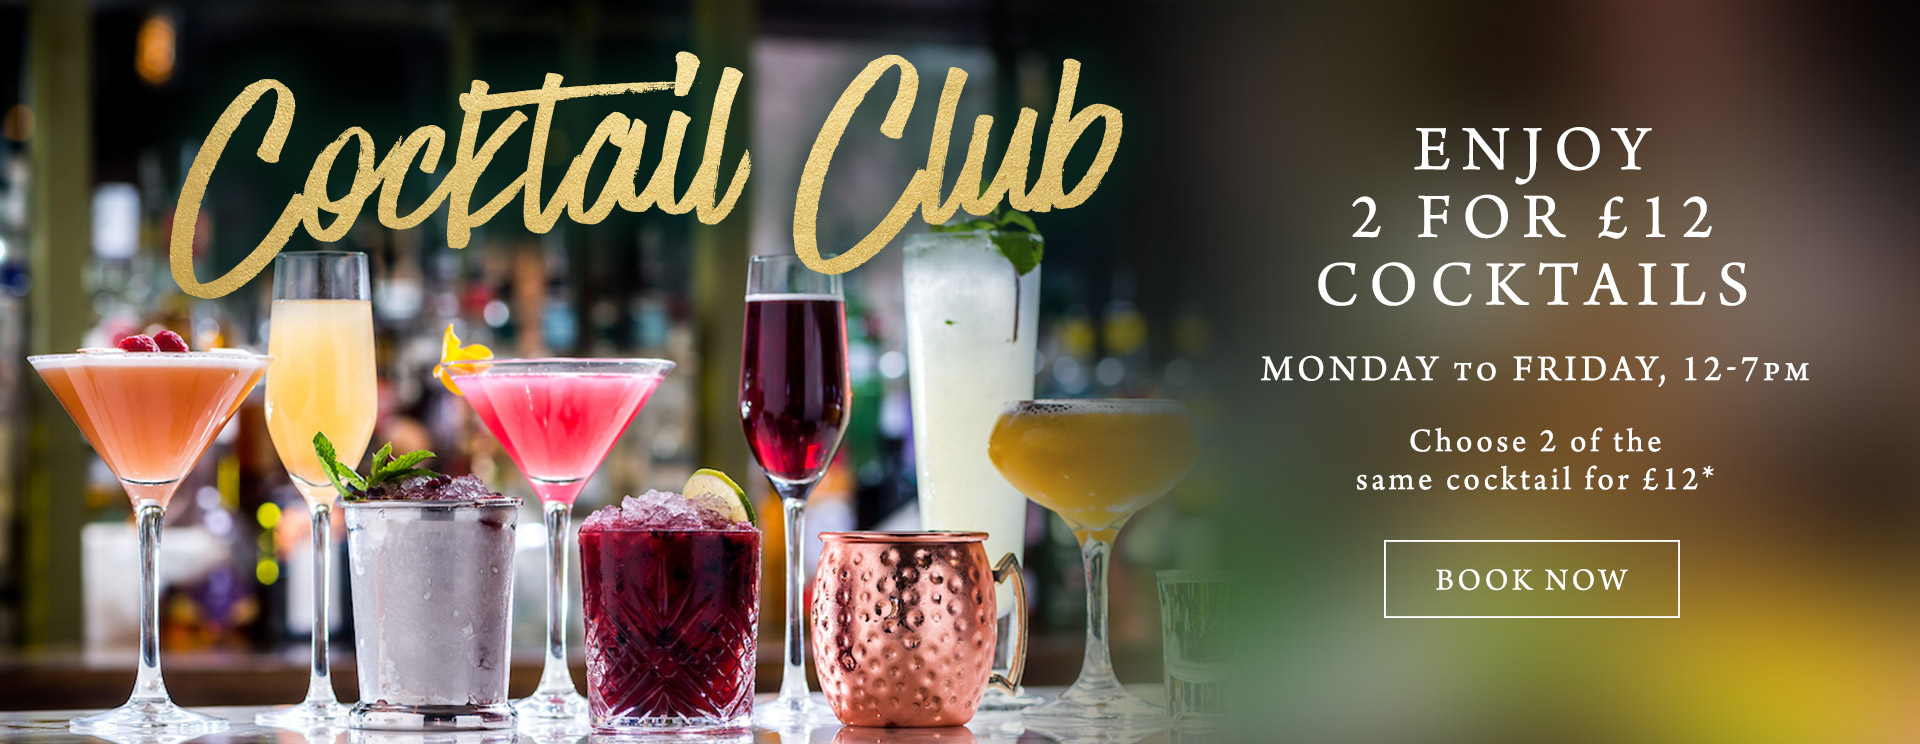 2 for £12 cocktails at The Hand & Sceptre